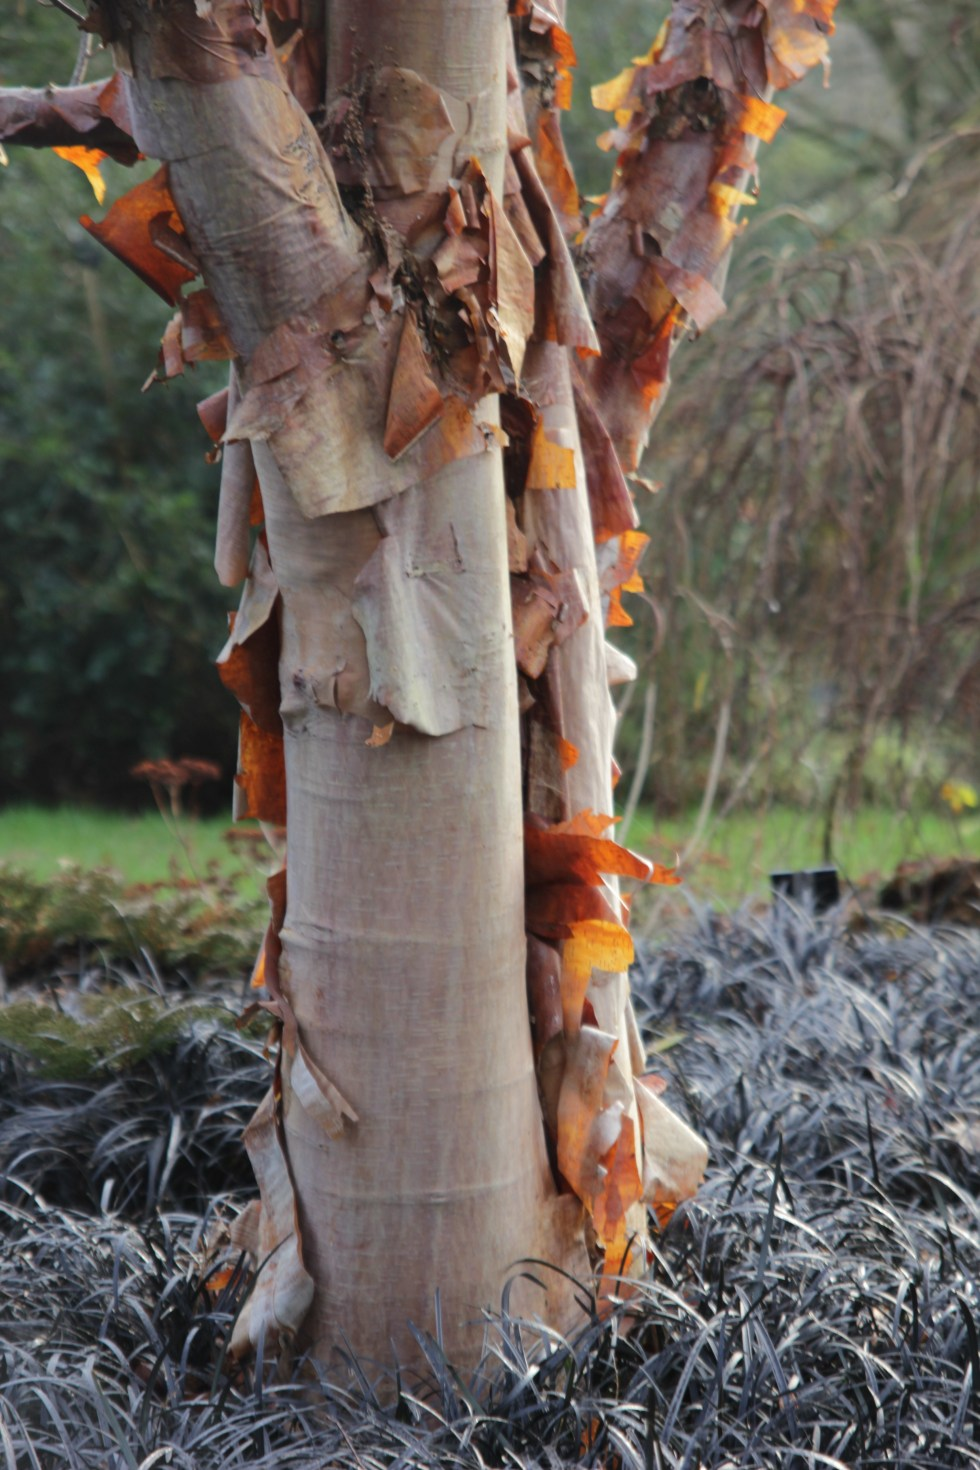 betula albosinensis bowling green 3 Plant of the year in 2017 was.........